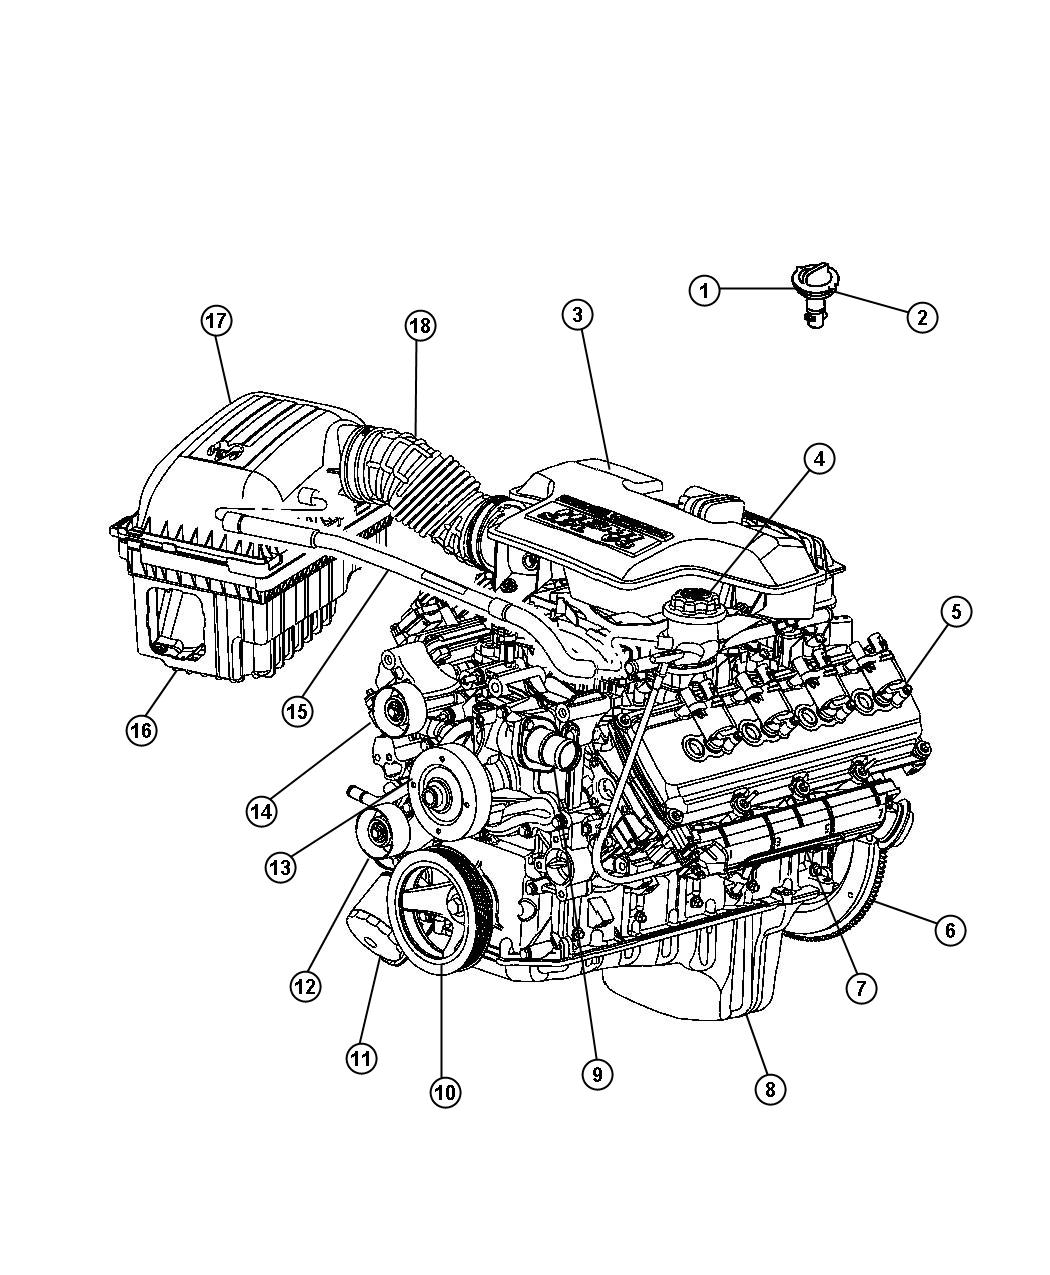 Ram 5 7 hemi engine block diagram on chrysler pacifica timing marks